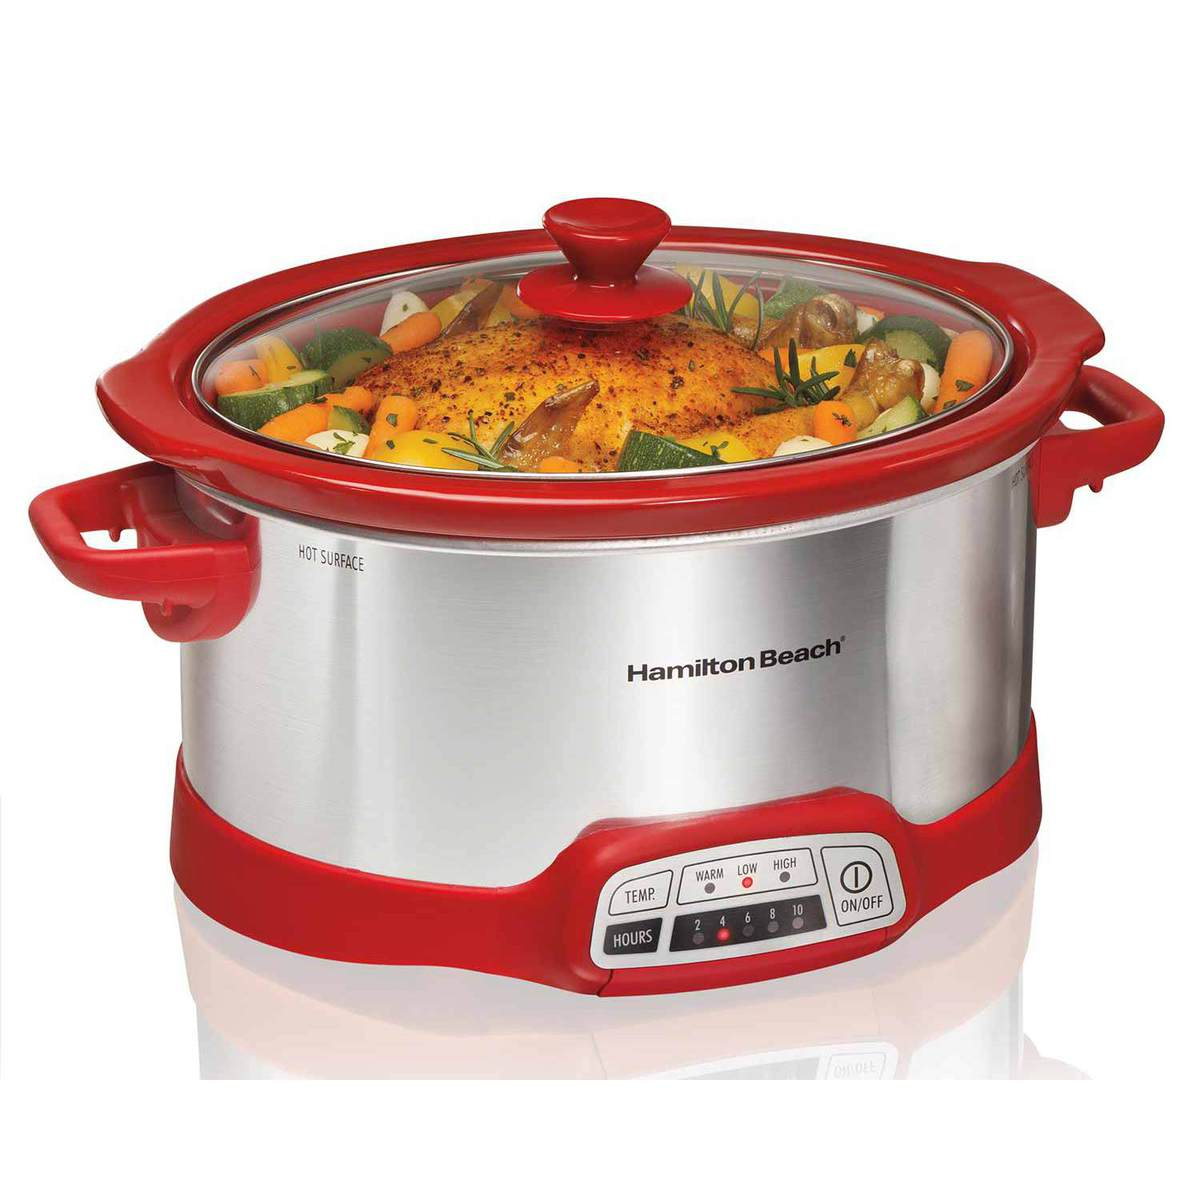 Ensemble™ Programmable 5 Quart Slow Cooker (33456)